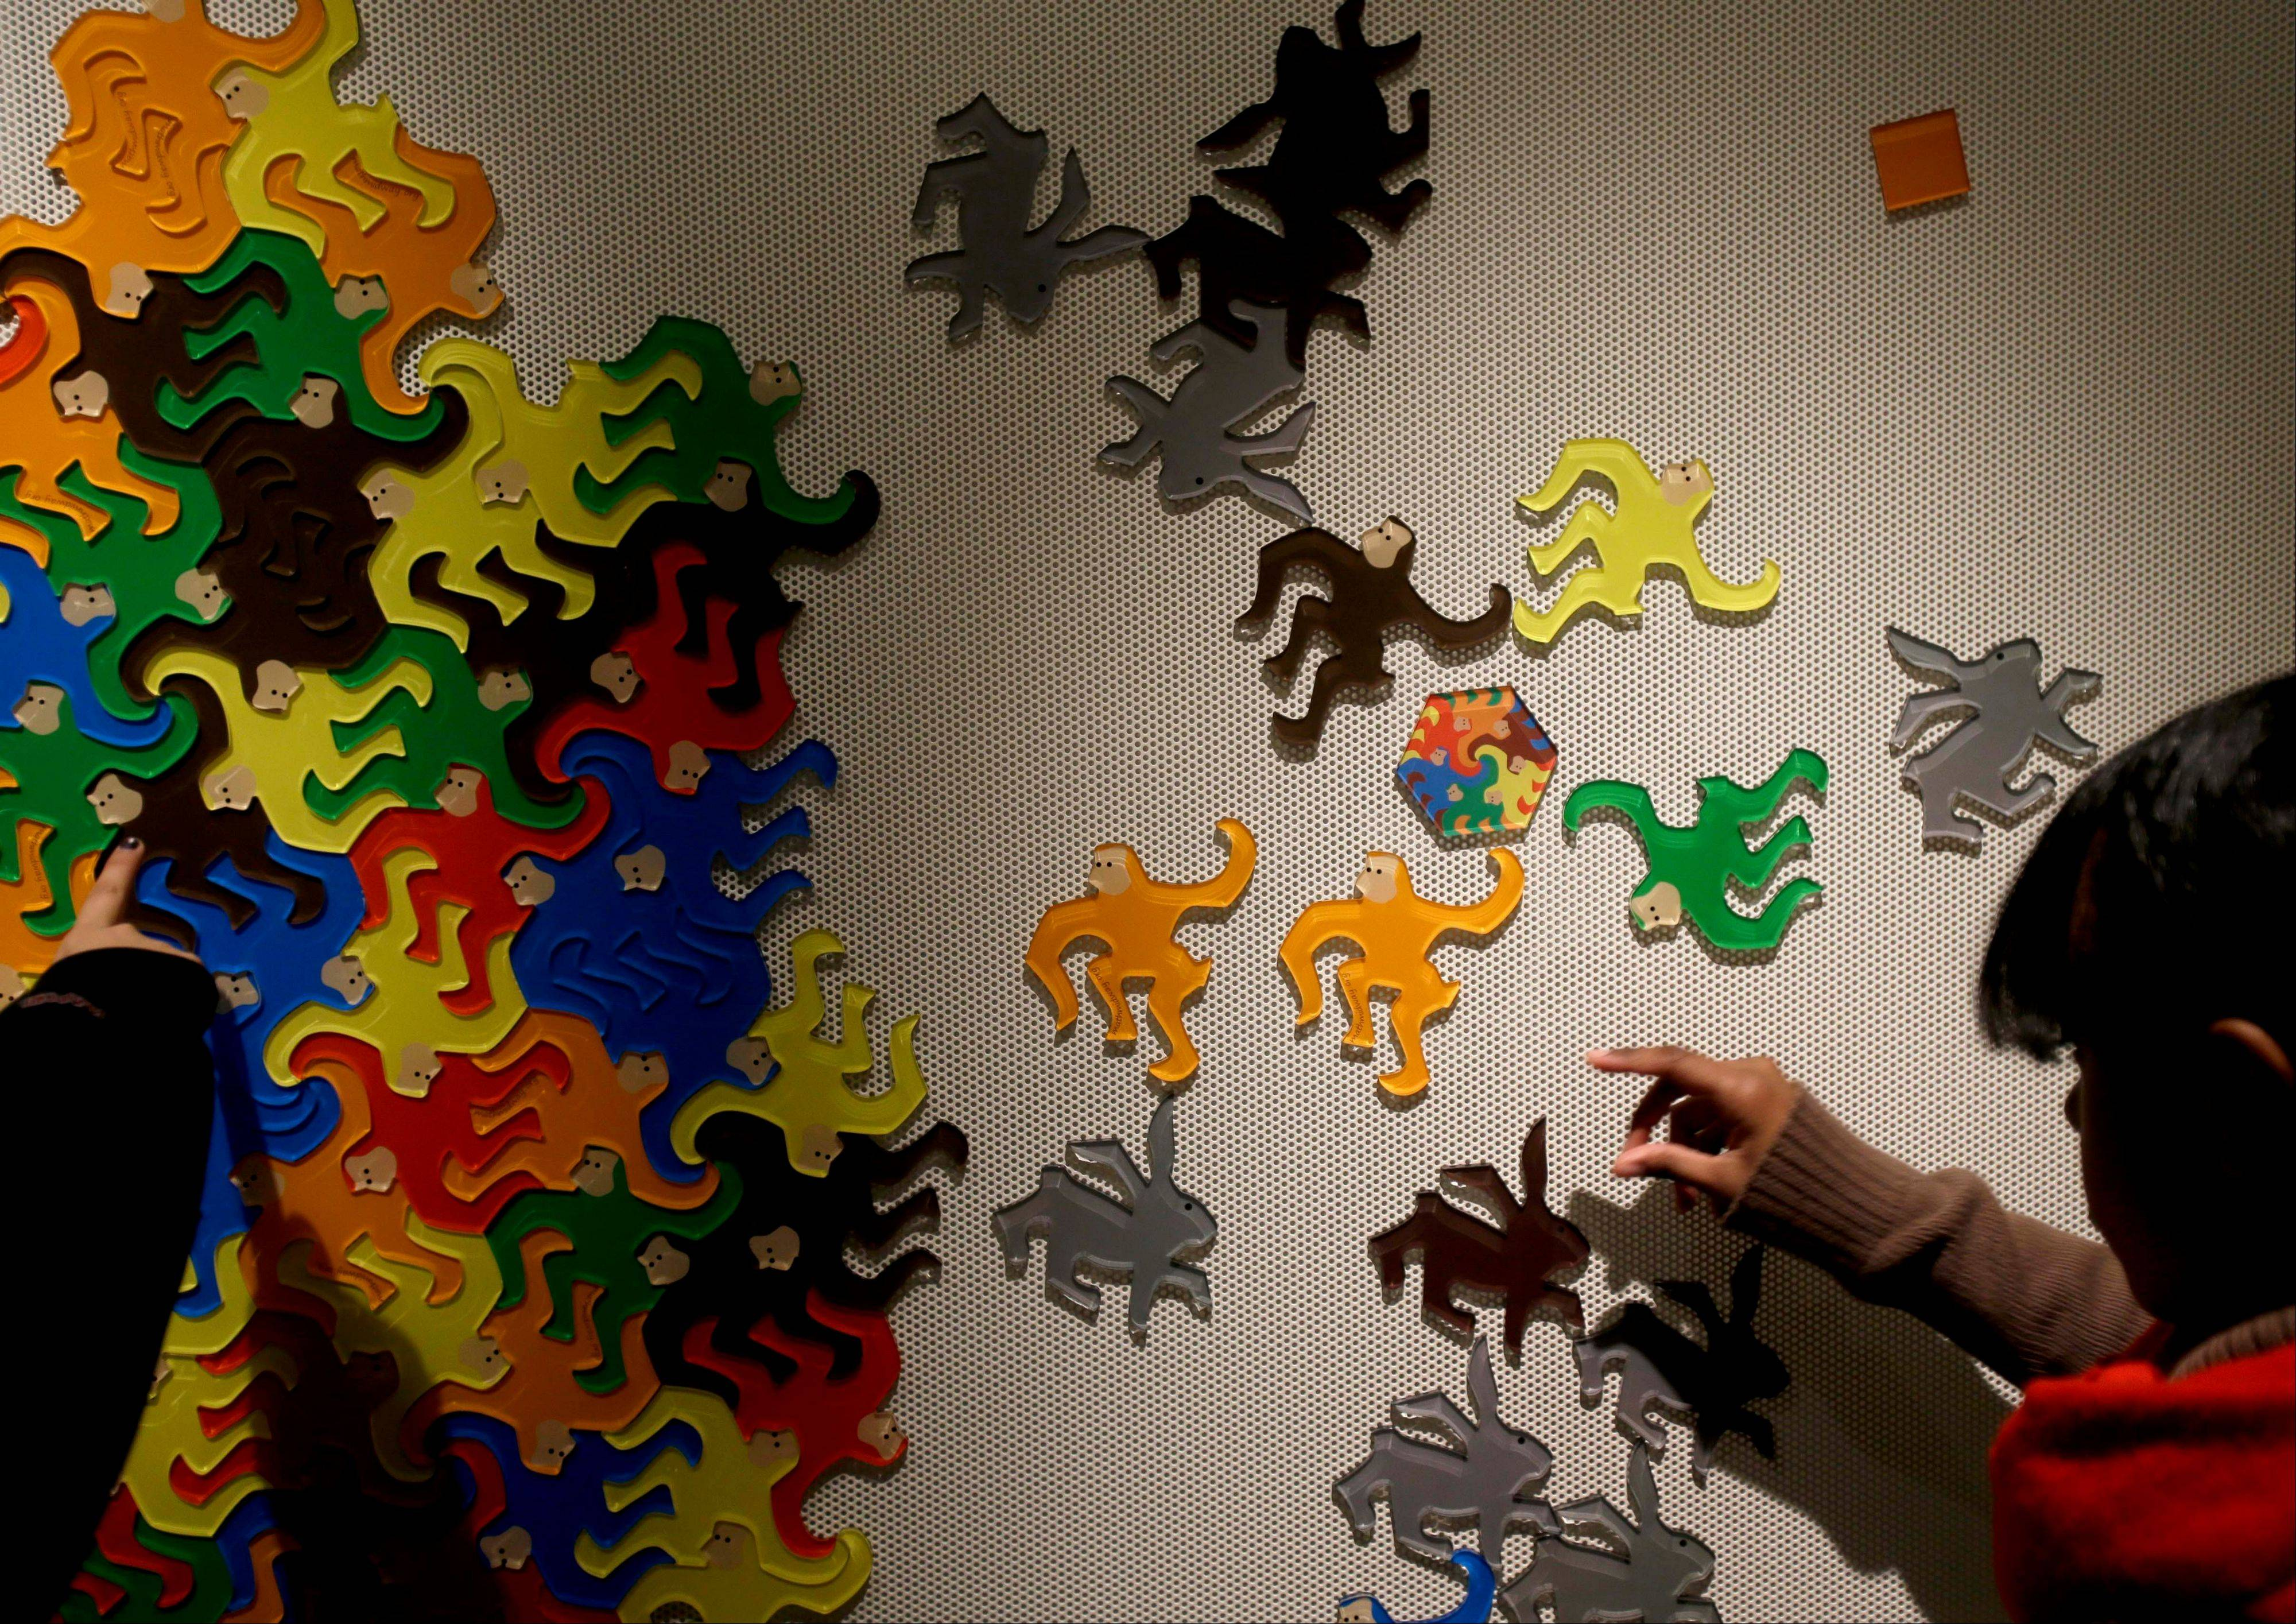 Students play with interlocking shapes at the museum's Tessellation Station at the National Museum of Mathematics.